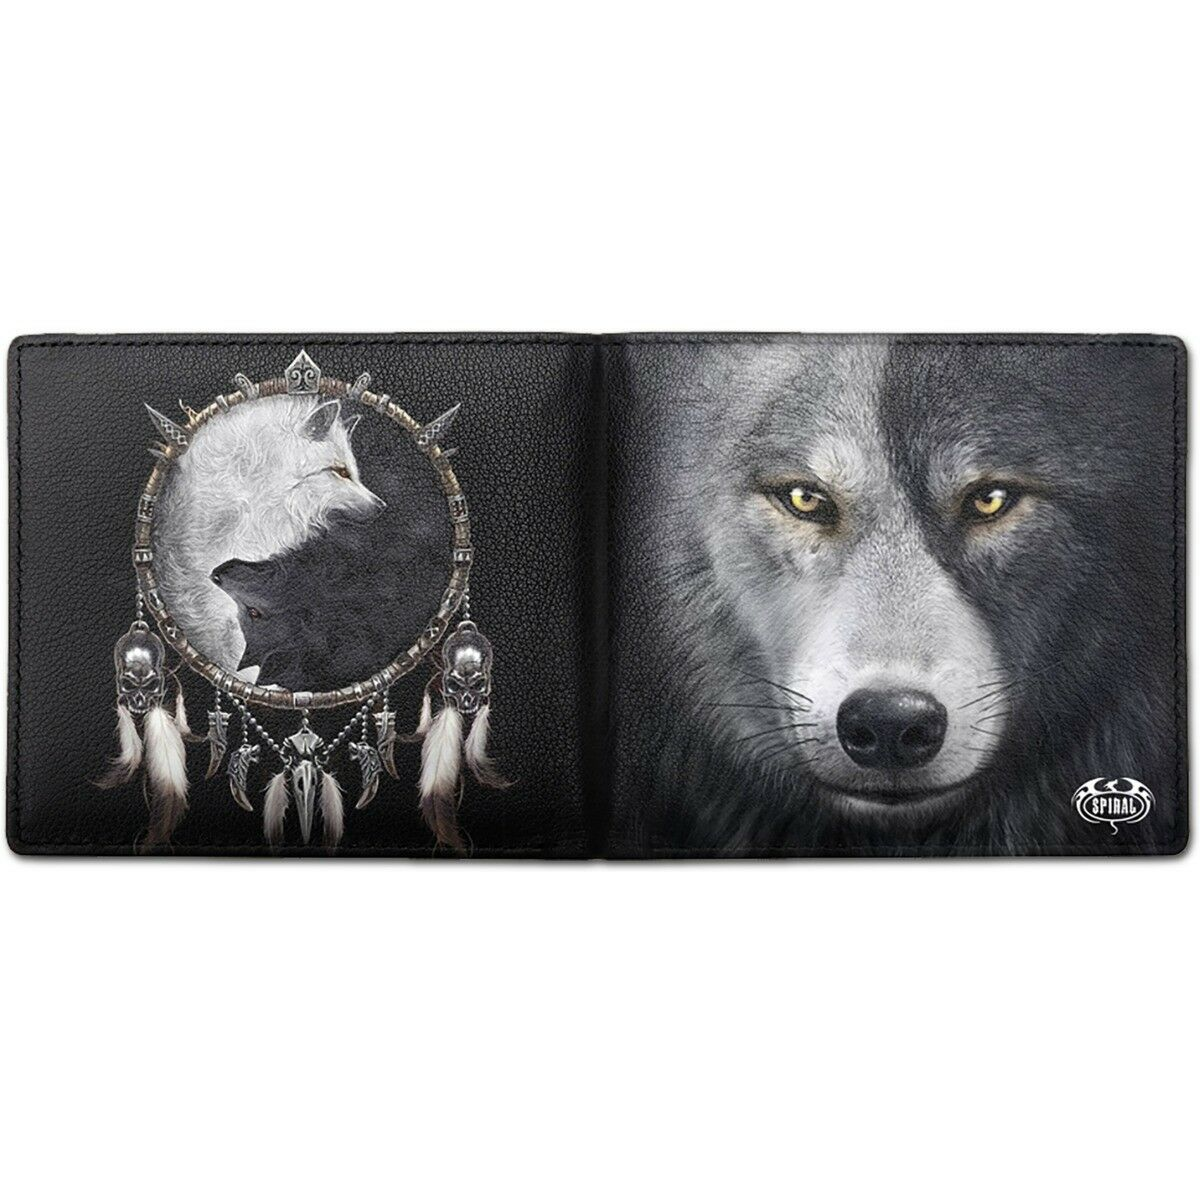 SPIRAL DIRECT WOLF CHI - BIFOLD WALLET WITH RFID BLOCKING AND GIFT BOX/Native